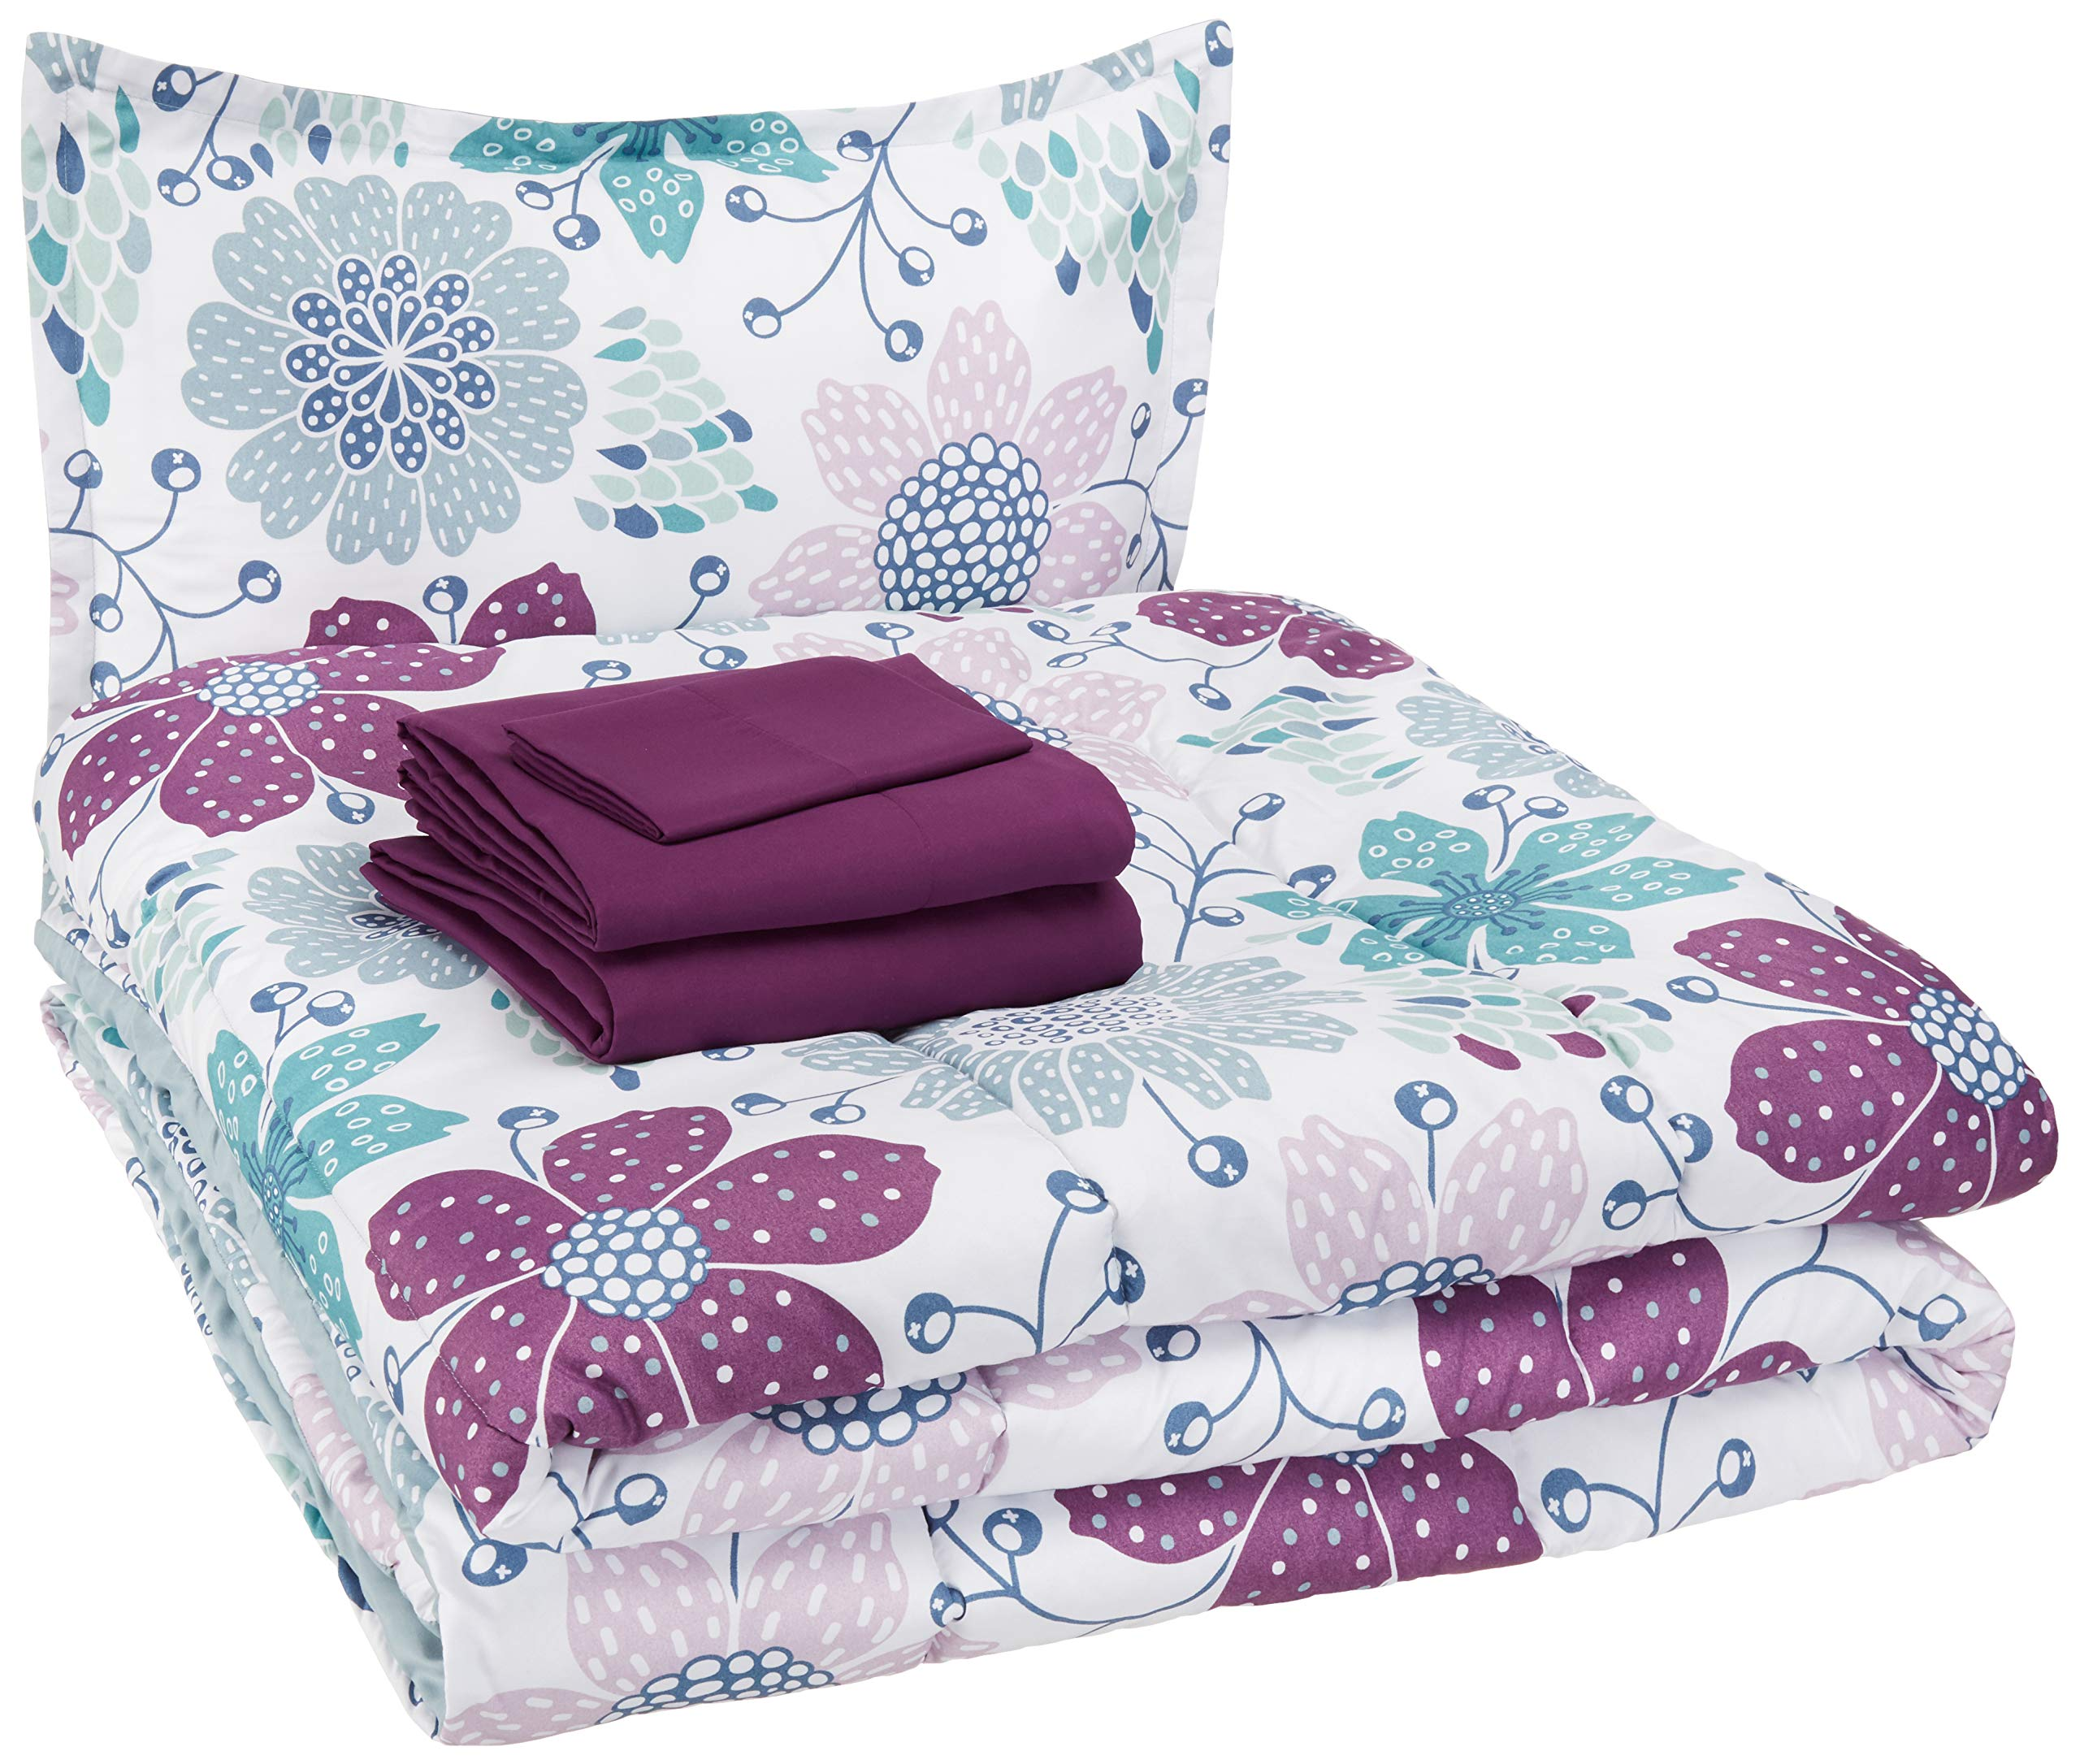 AmazonBasics Kid's Bed-in-a-Bag - Soft, Easy-Wash Microfiber - Twin, Purple Flowers